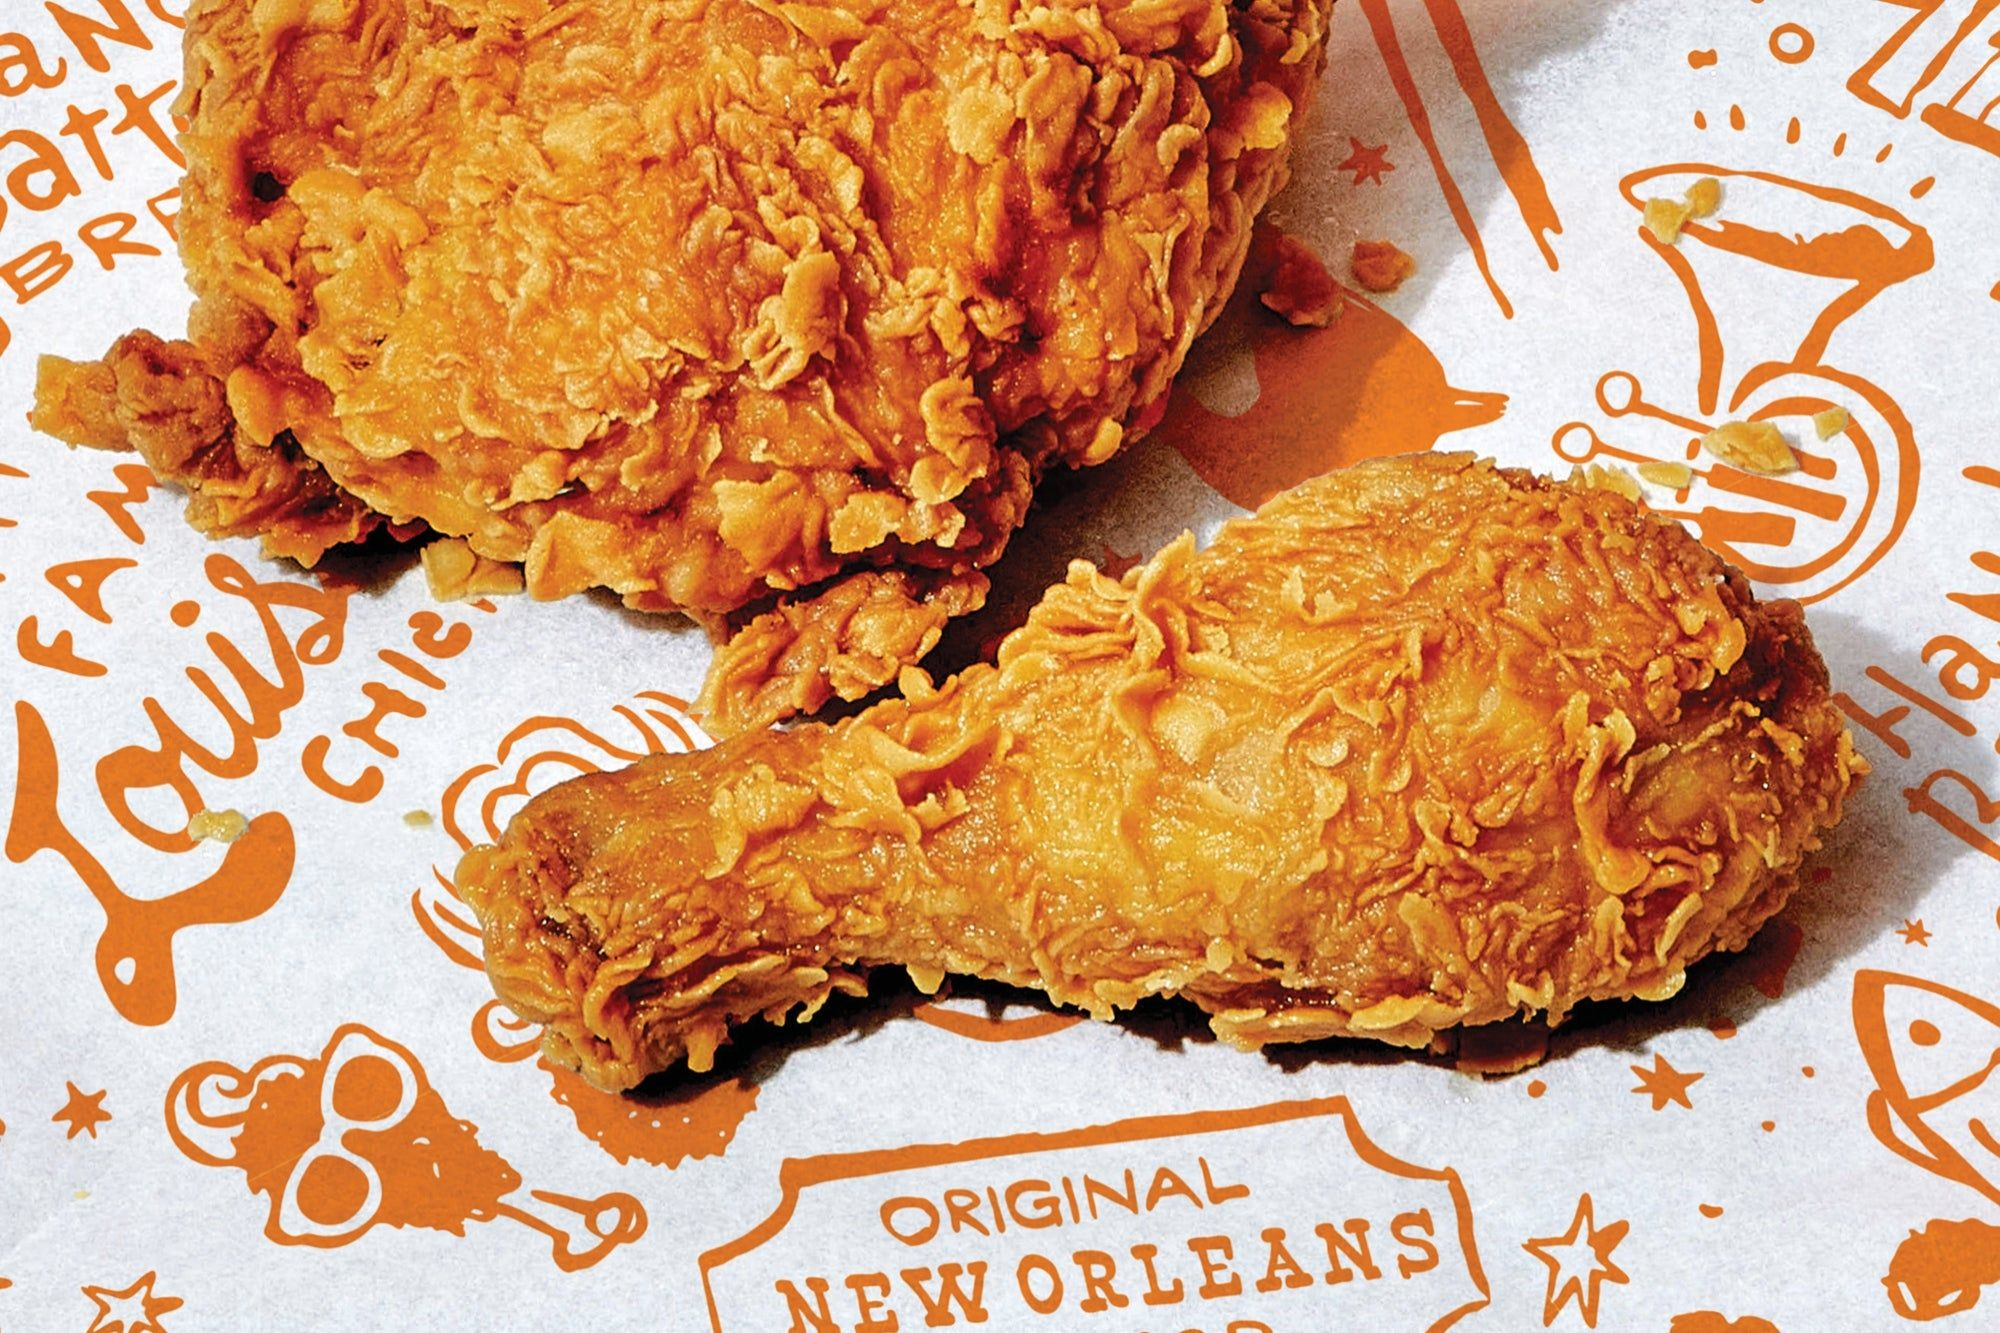 $7.00 2 pc Signature Chicken Combo Deal at Popeyes!